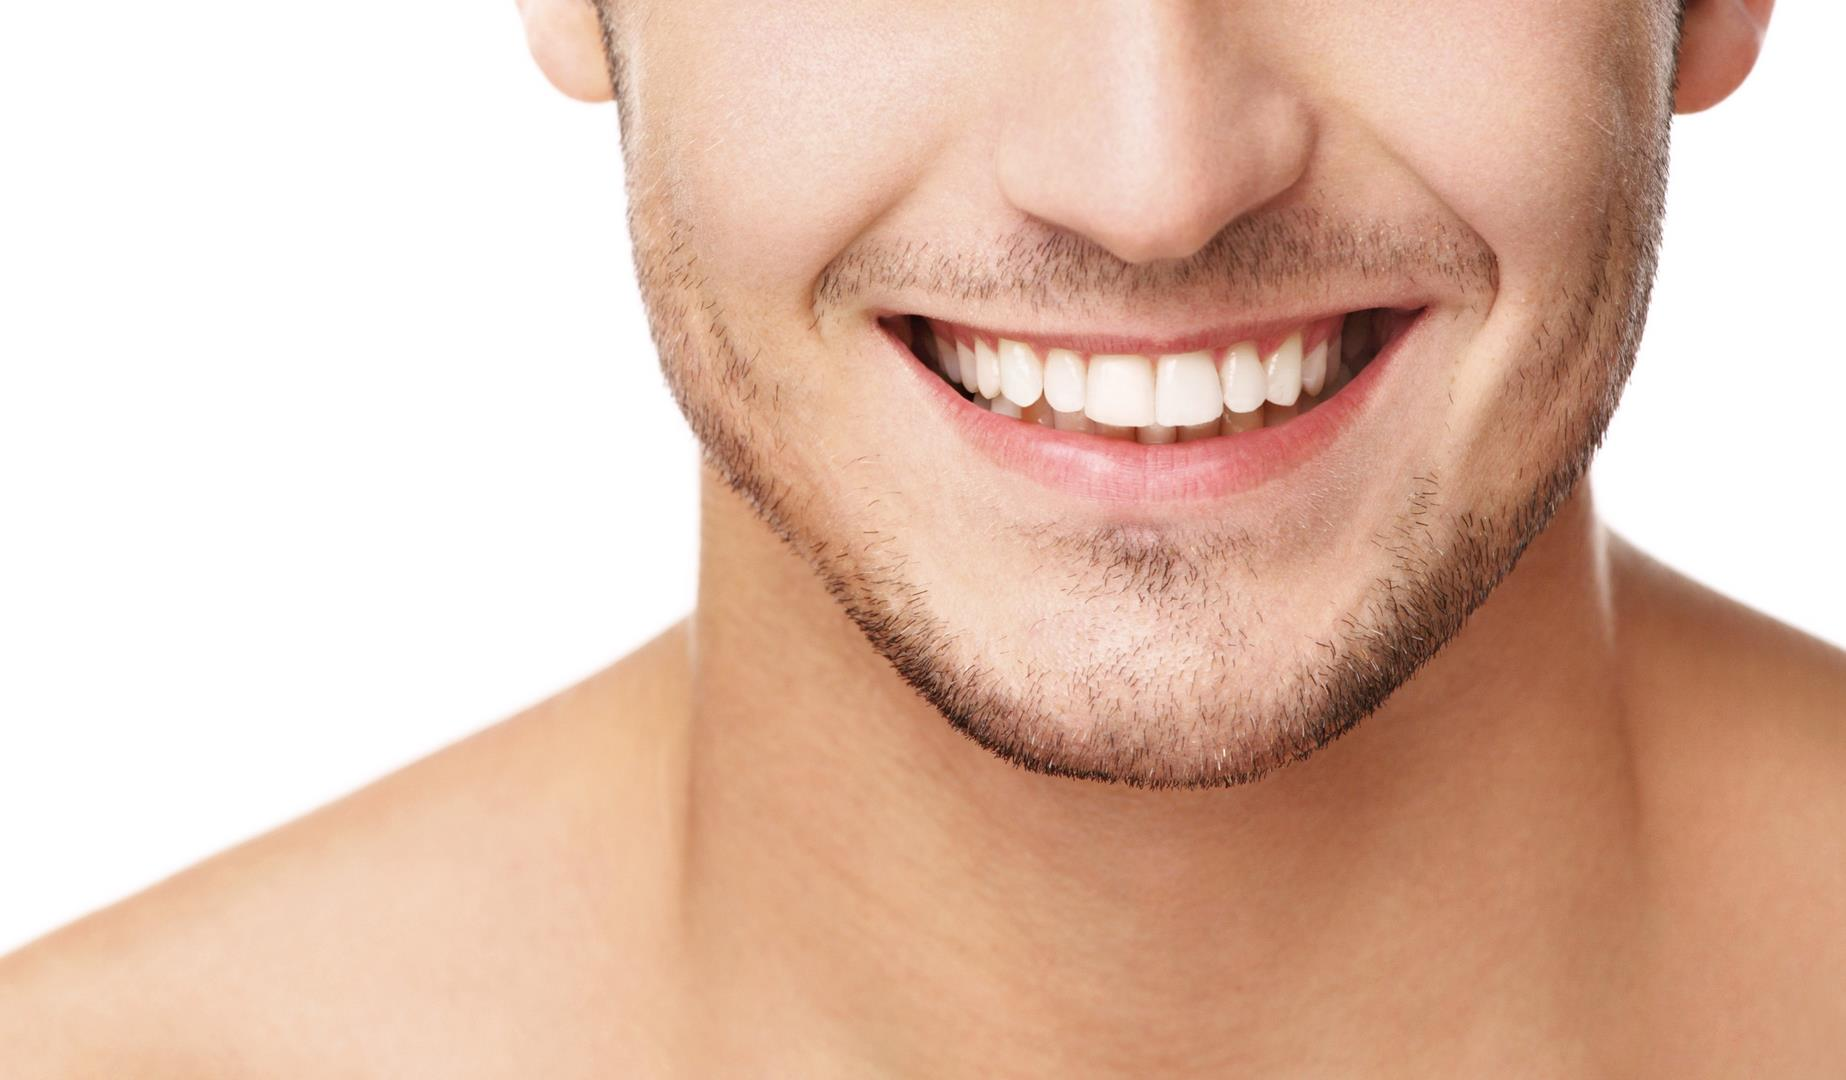 alignements-dents-orthodontie-gouttieres-invisibles-hayouma-ninael-dentiste-marseille-5